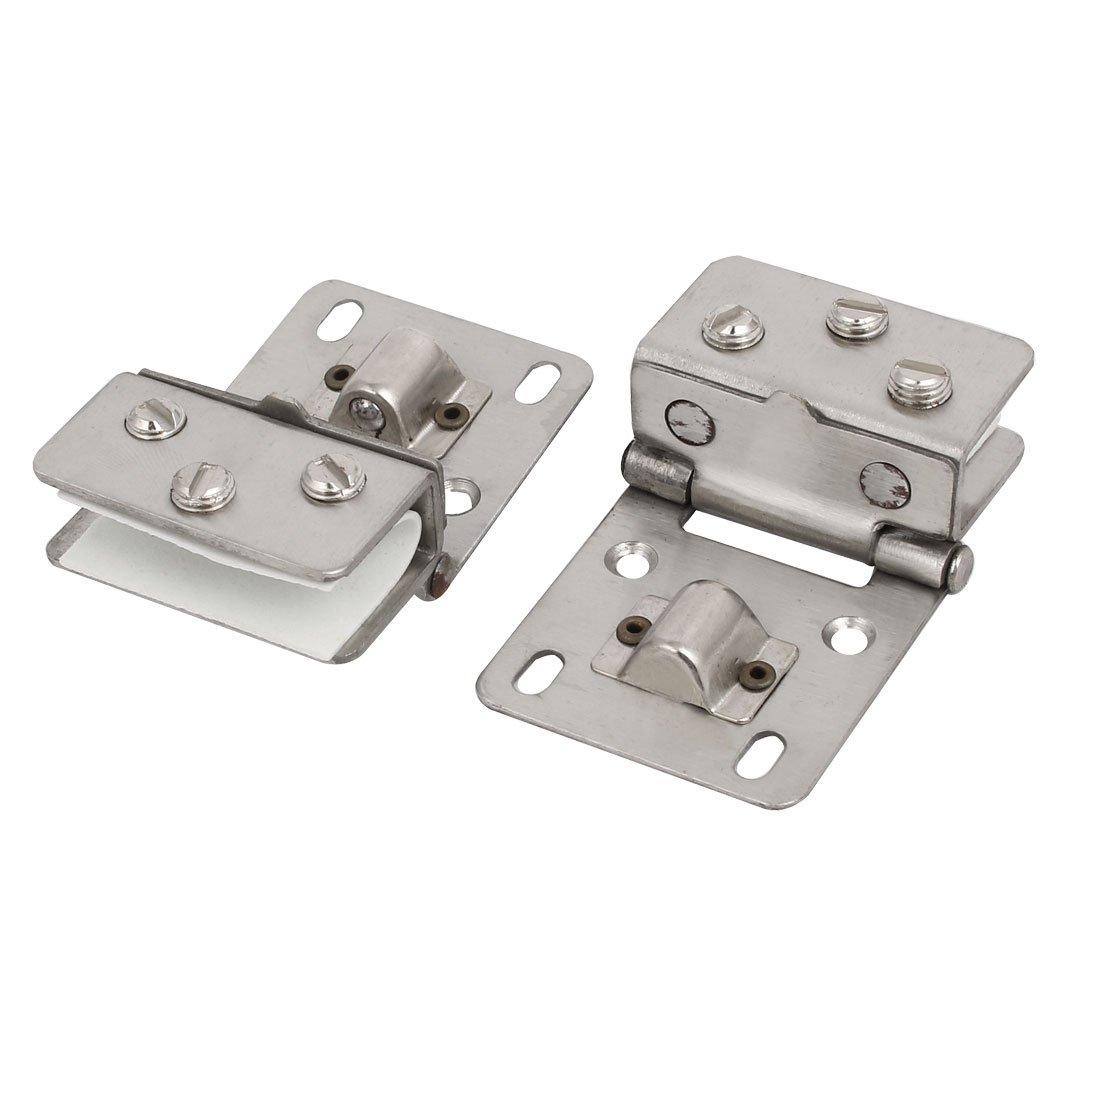 uxcell 2pcs Door Clip Clamp Support Bracket Catch Hinges for 4.5mm-9mm Thickness Glass